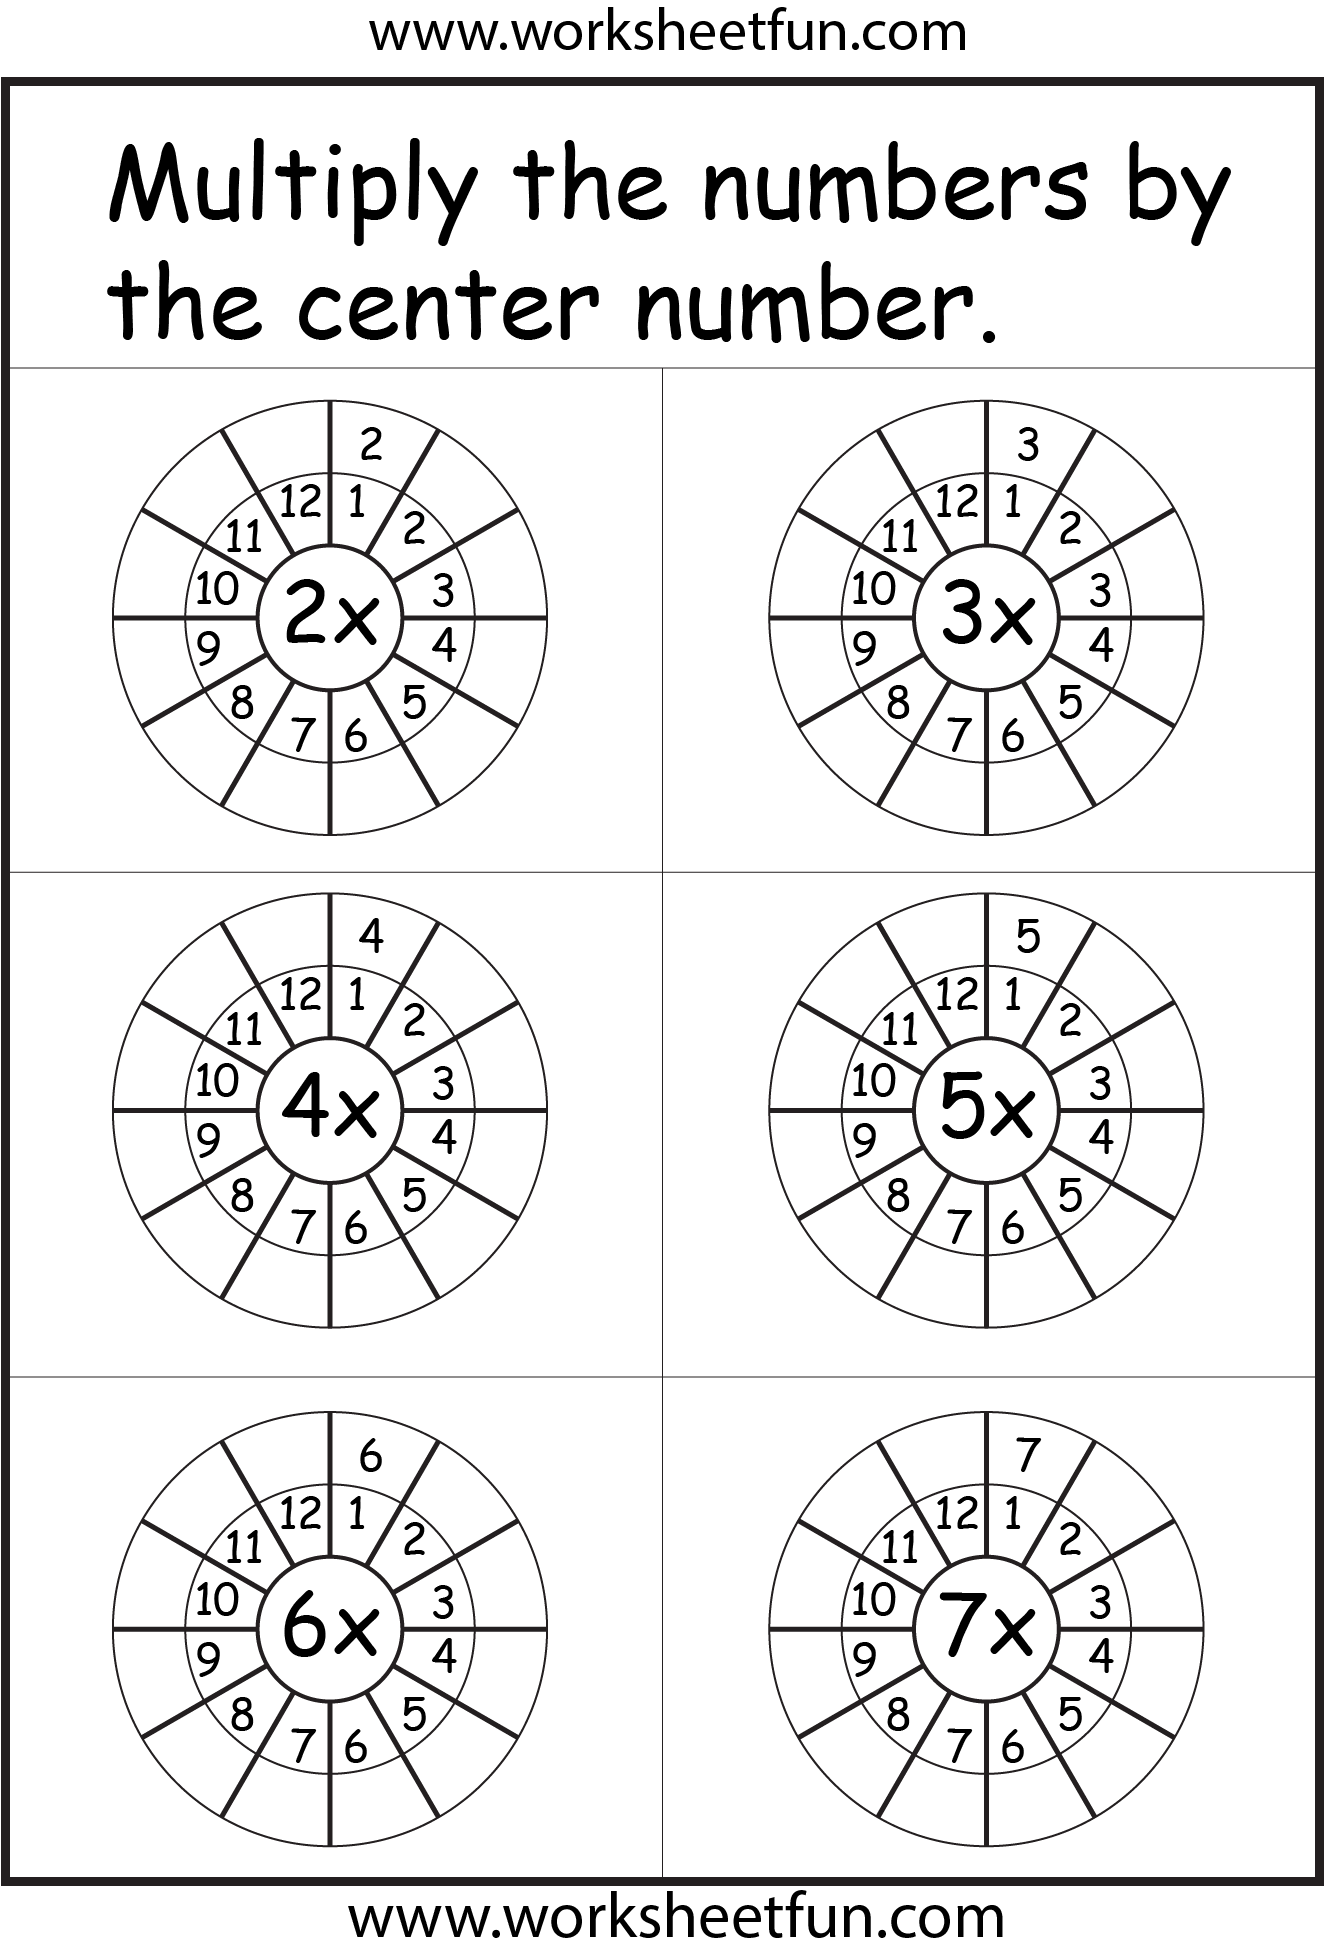 Times Table Worksheet 2 12 Times Tables Two Worksheets